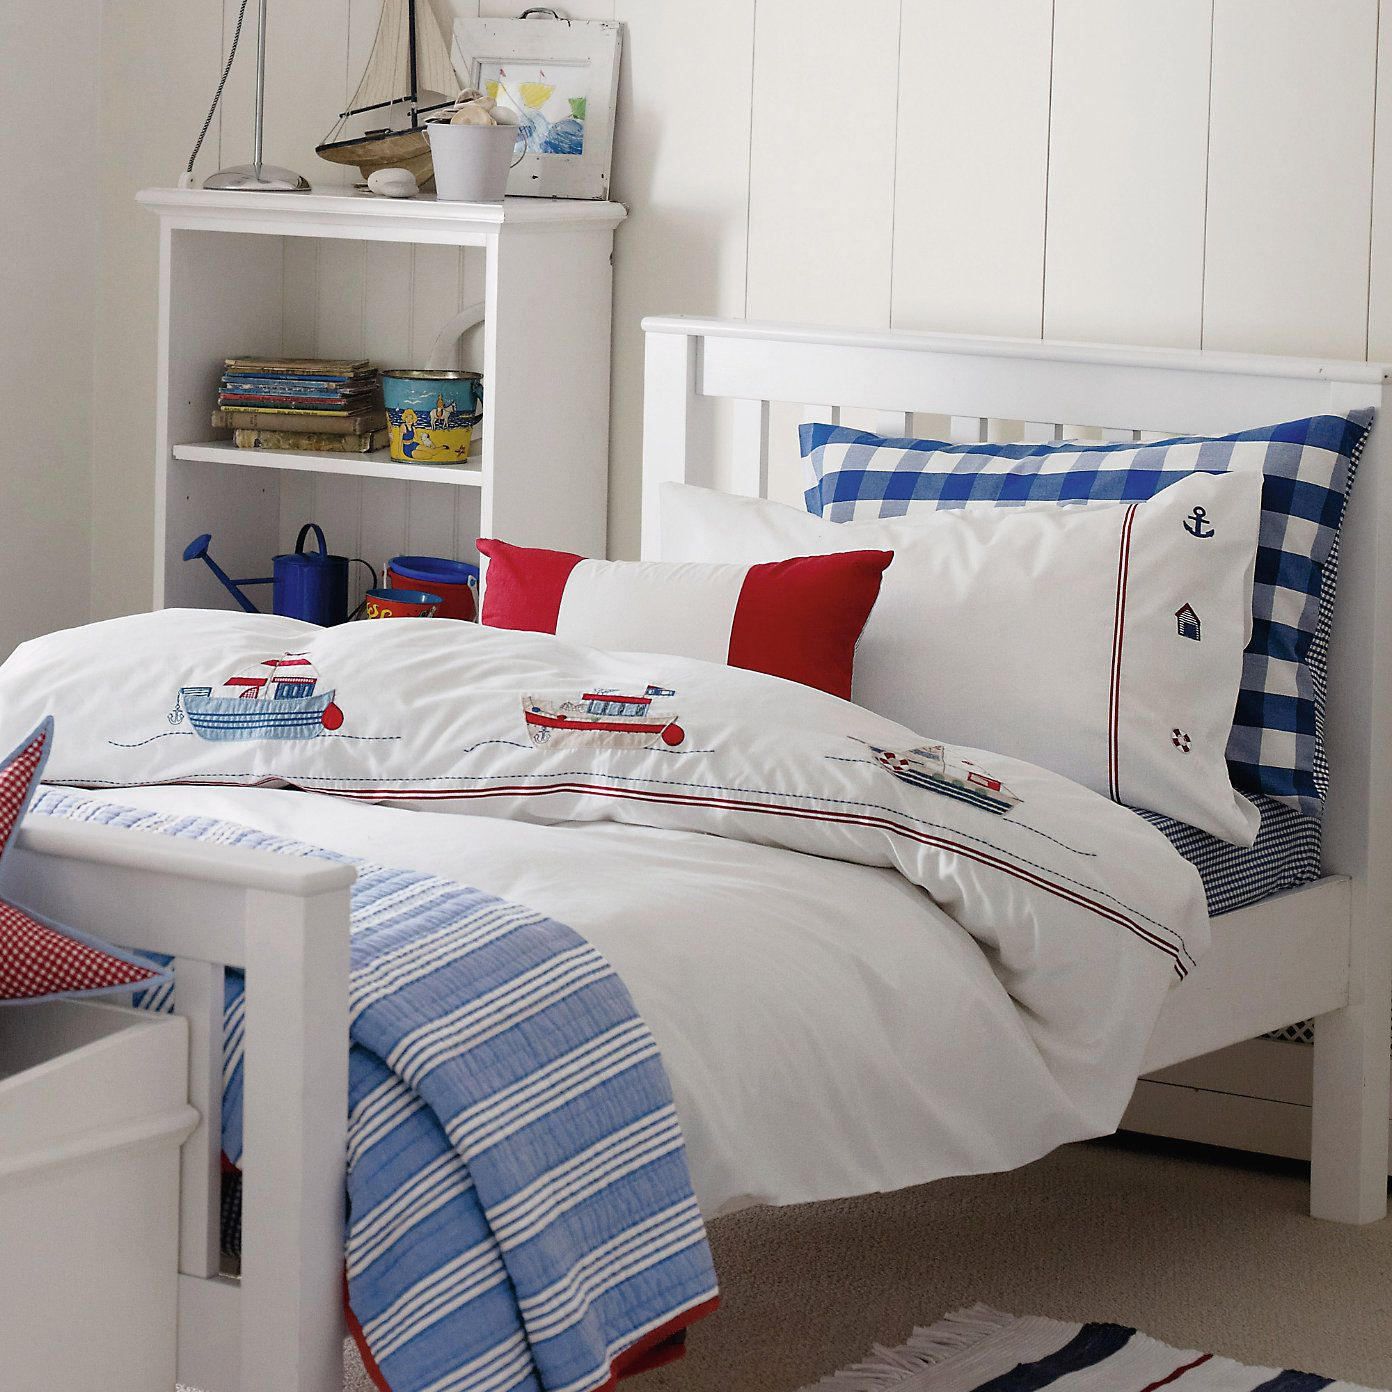 Like The Mixed Prints Childrens Bedrooms Boys Childrens Bedrooms Bedroom Furnishings